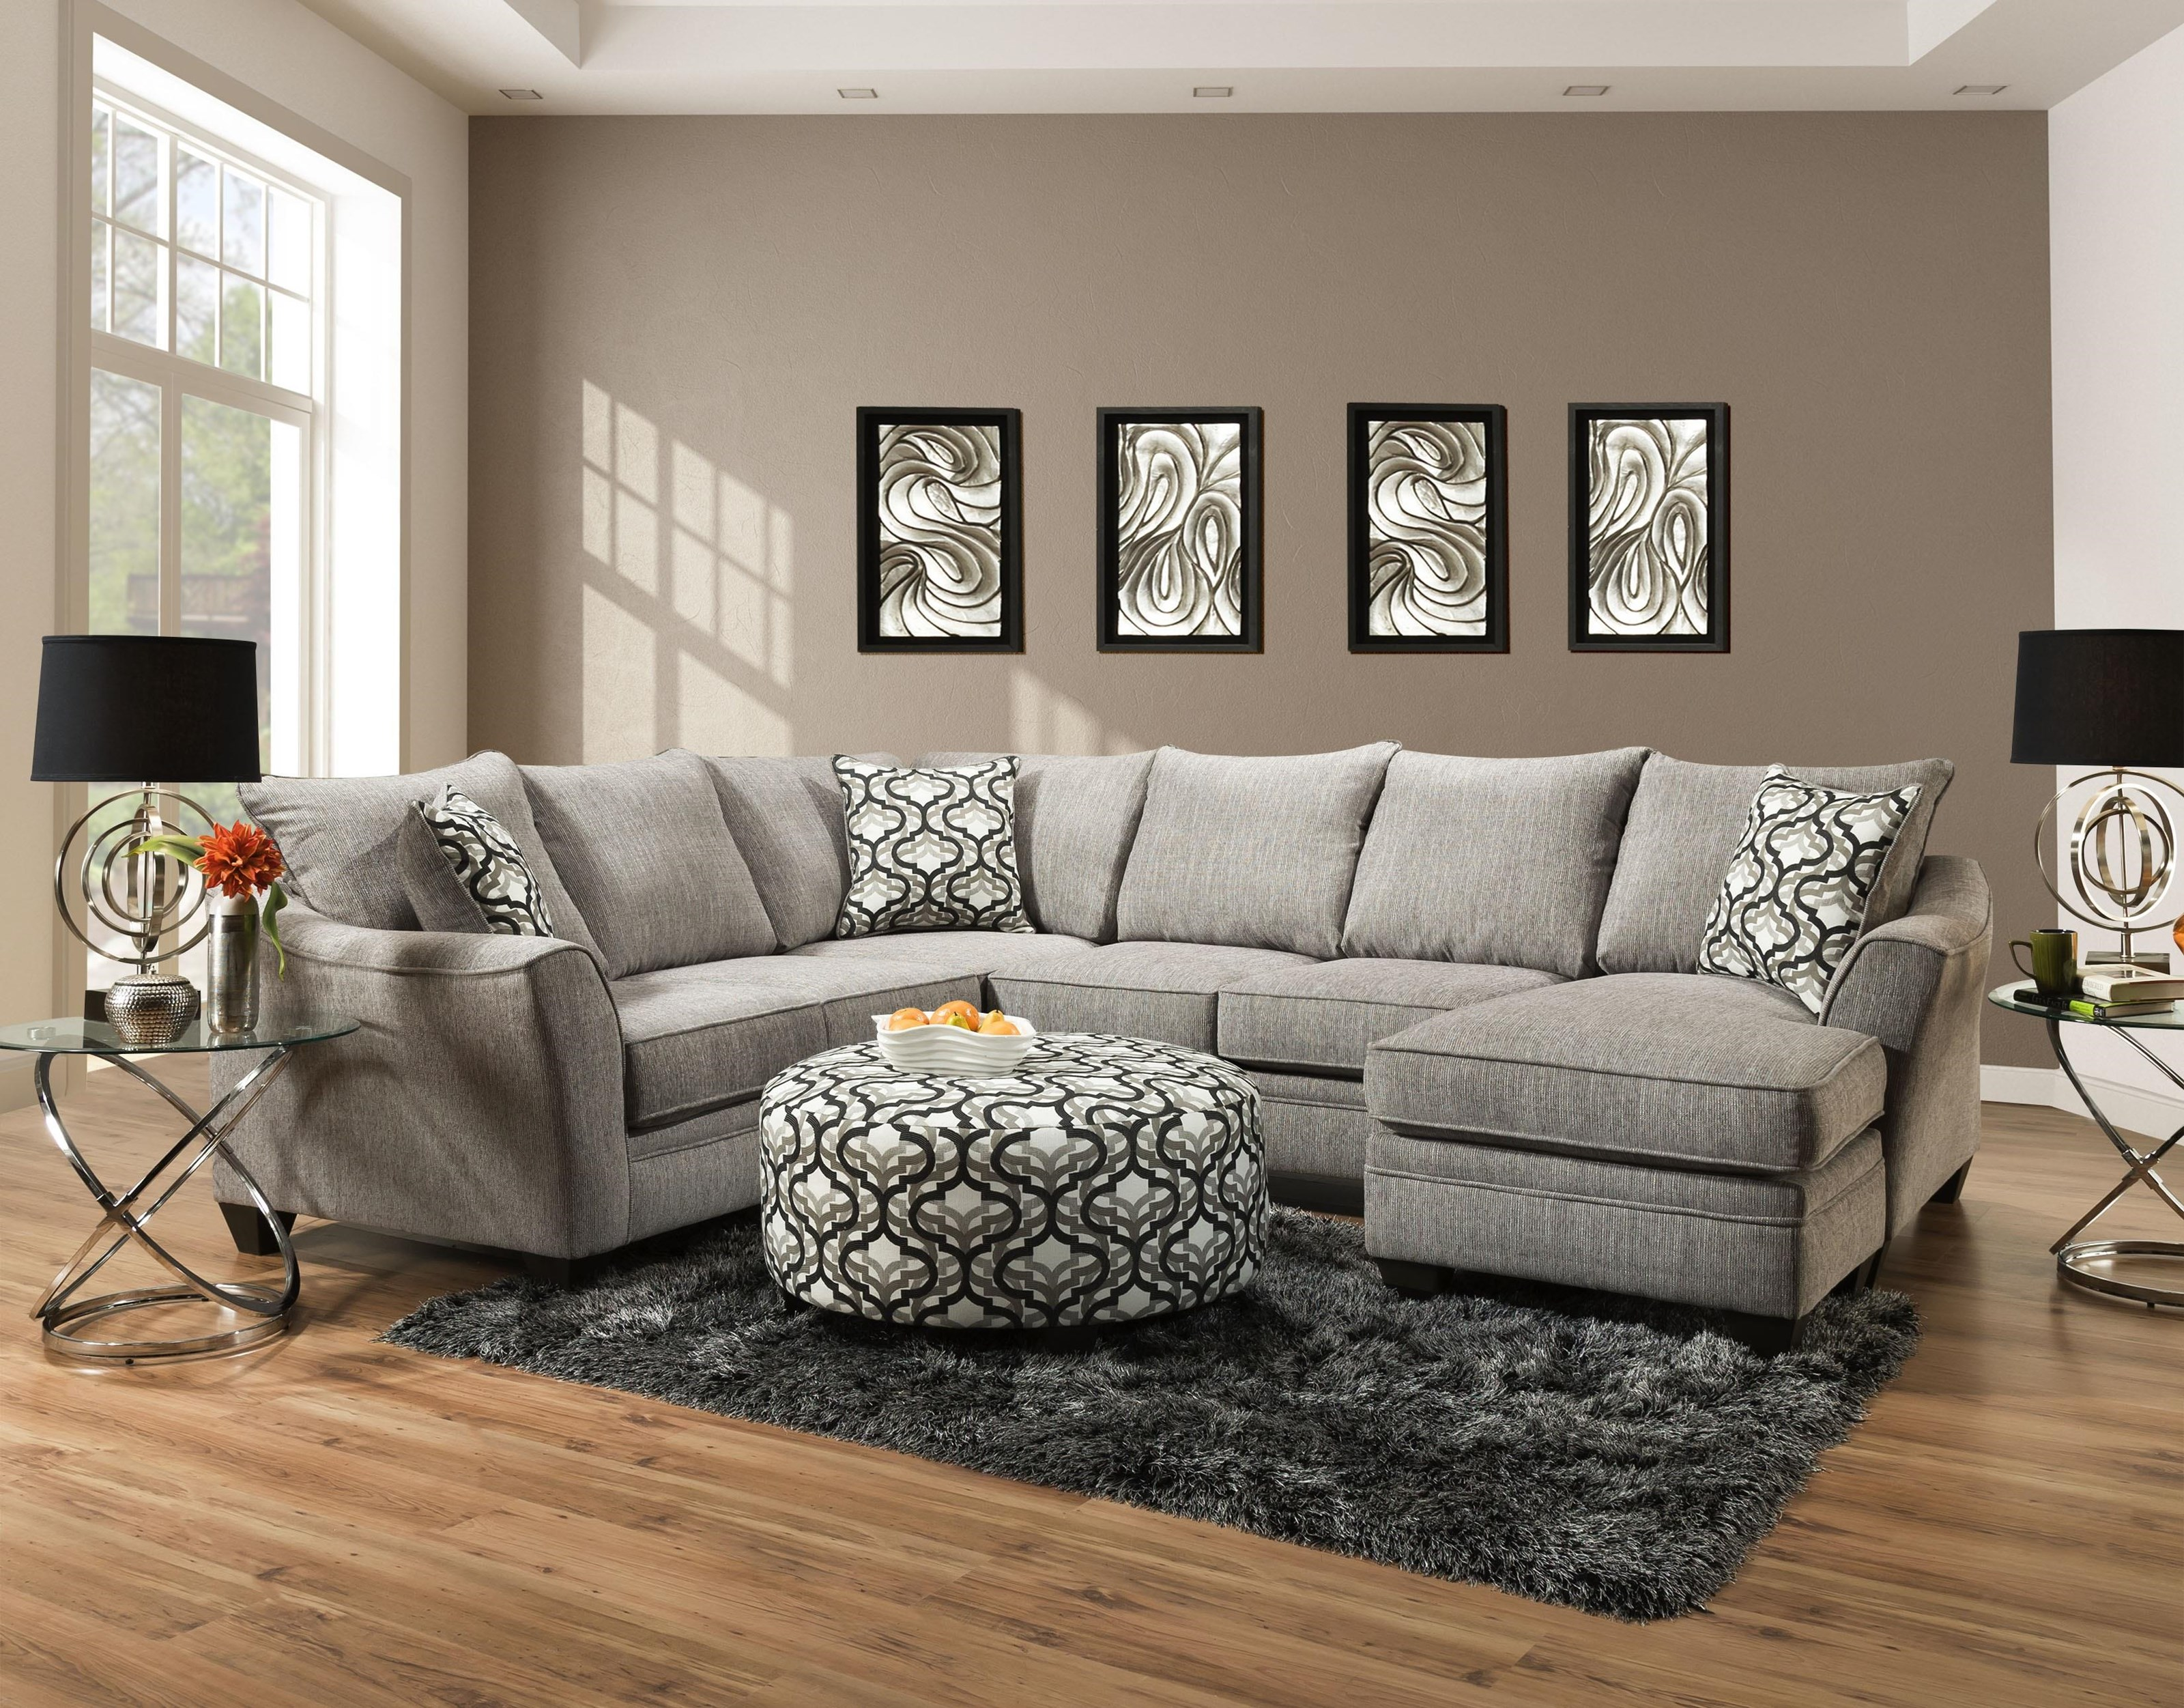 Belford Belford Sectional Sofa